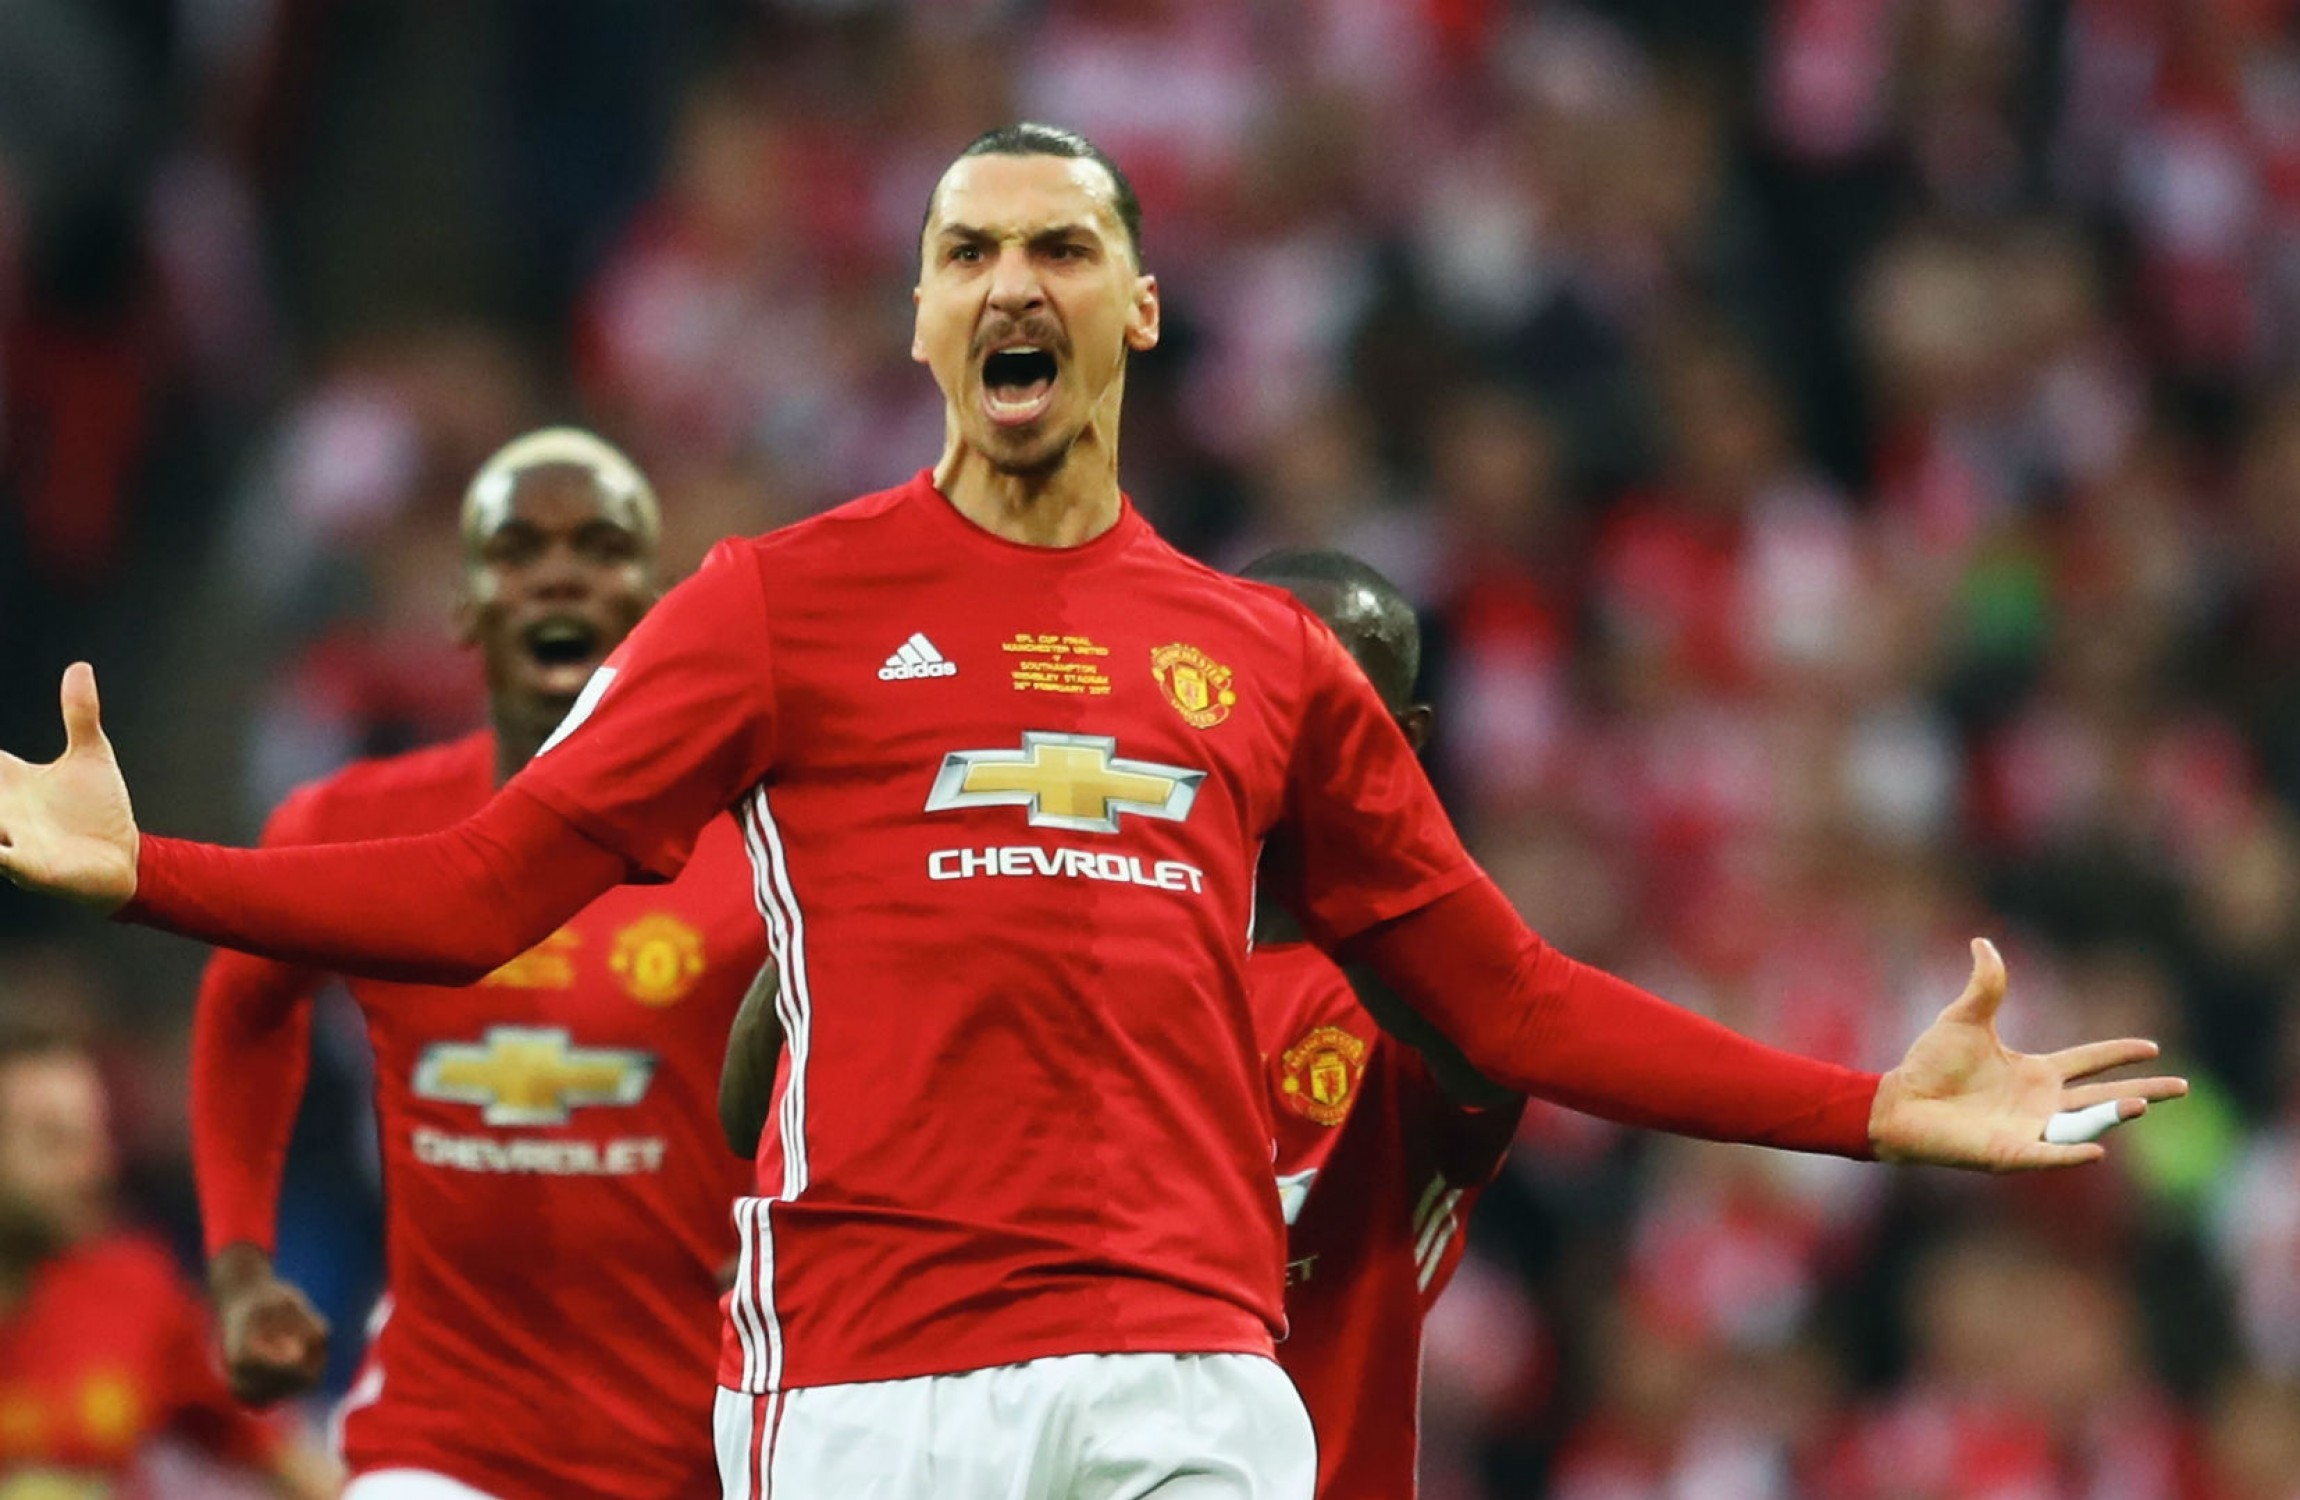 Manchester United confirmed lineup vs Sunderland: Pogba, Shaw start; De Gea surprise exclusion